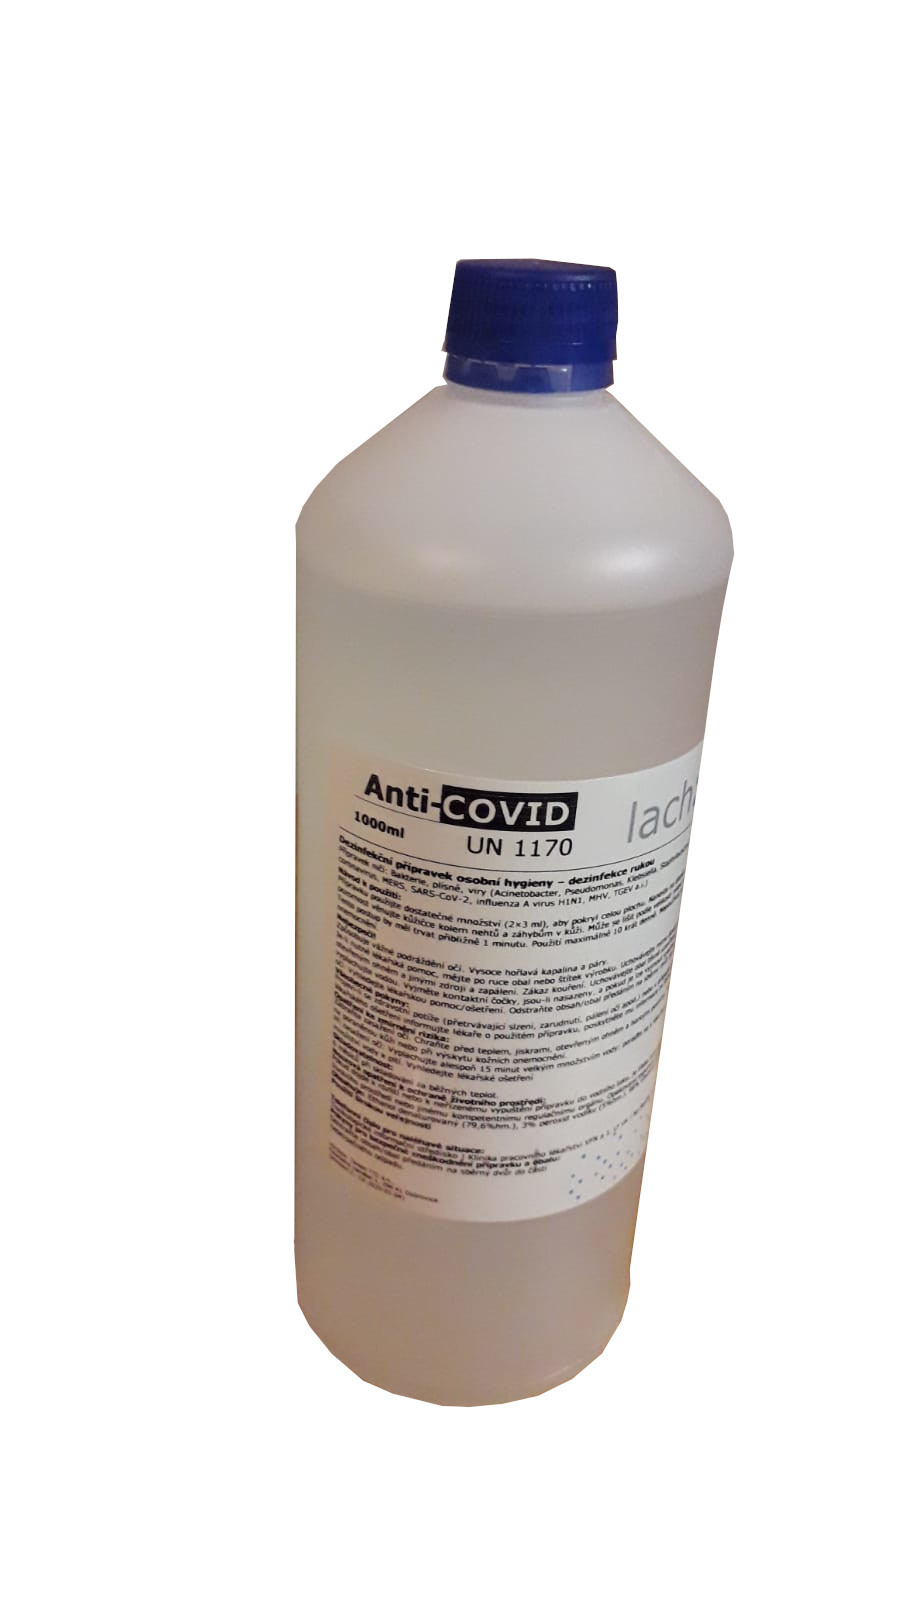 Anti-COVID dezinfekce -1000ml